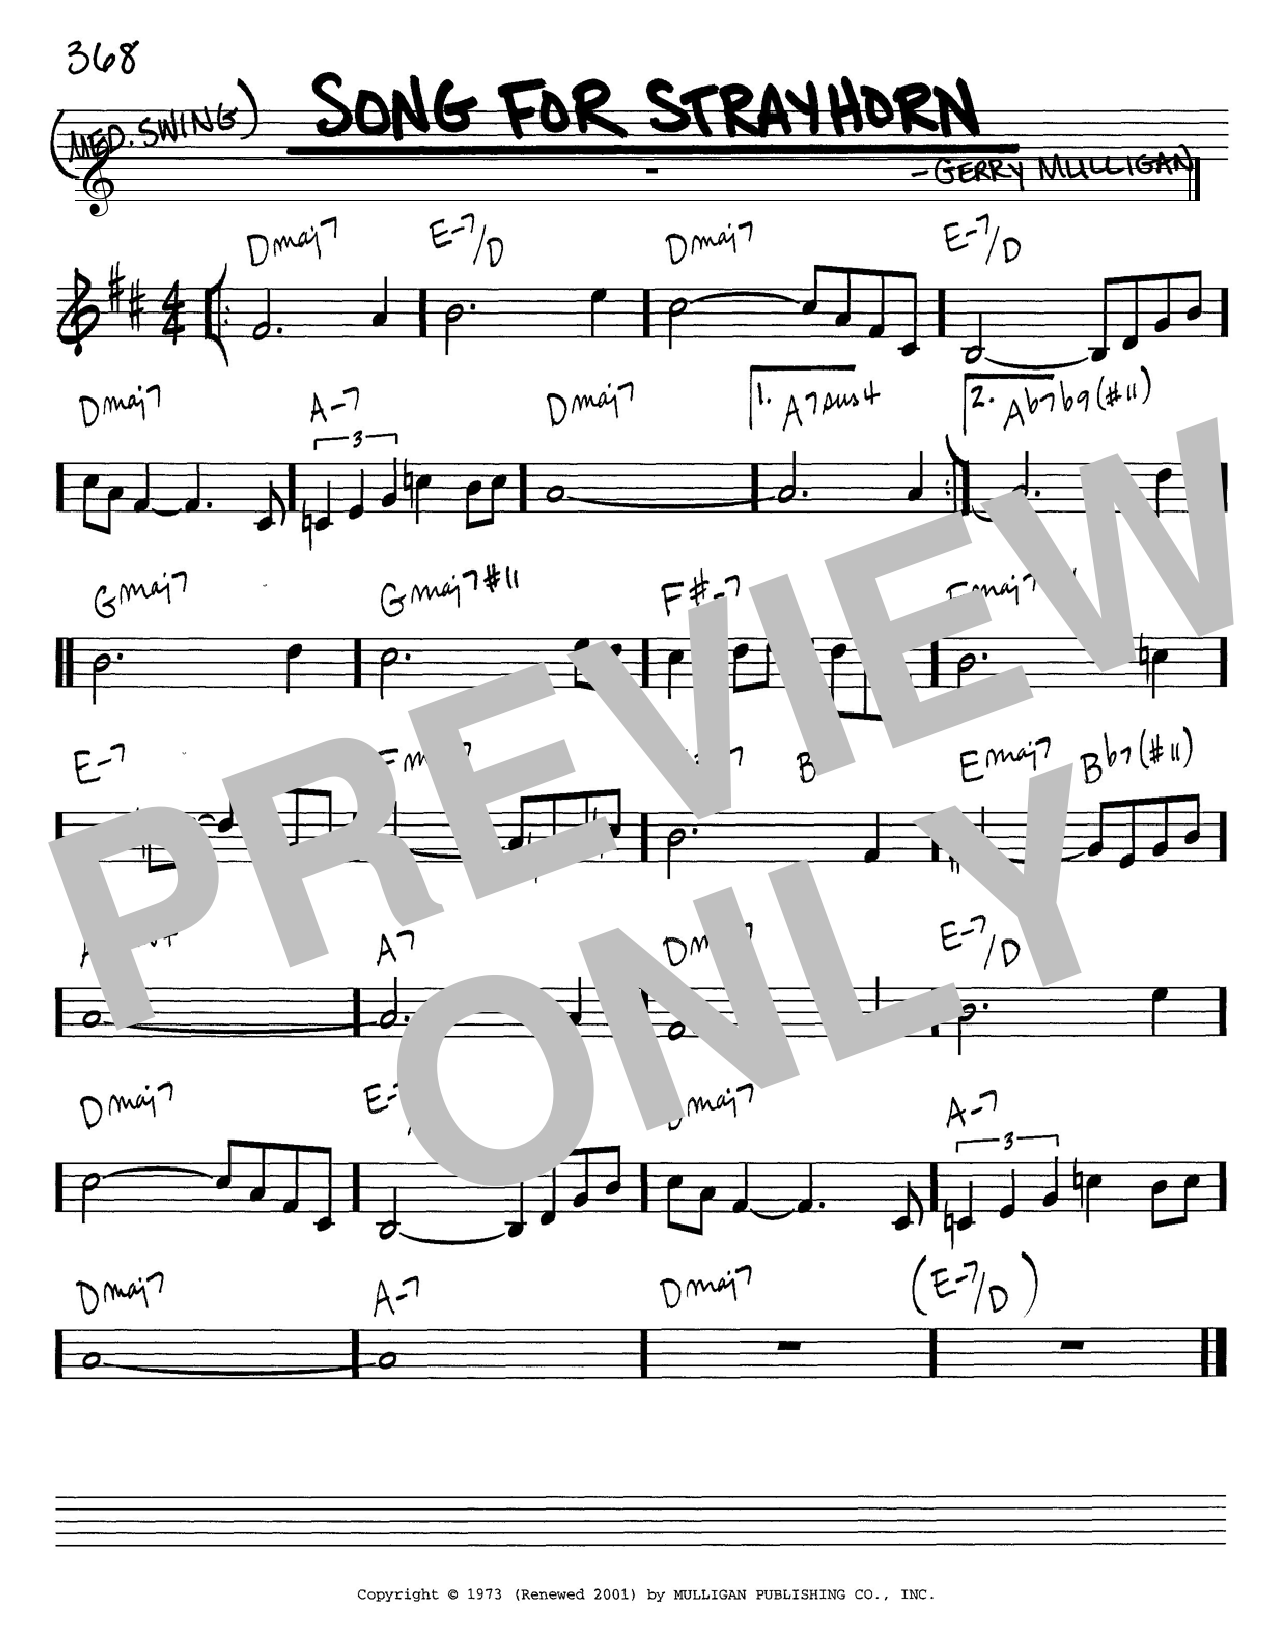 Gerry Mulligan Song For Strayhorn sheet music notes and chords